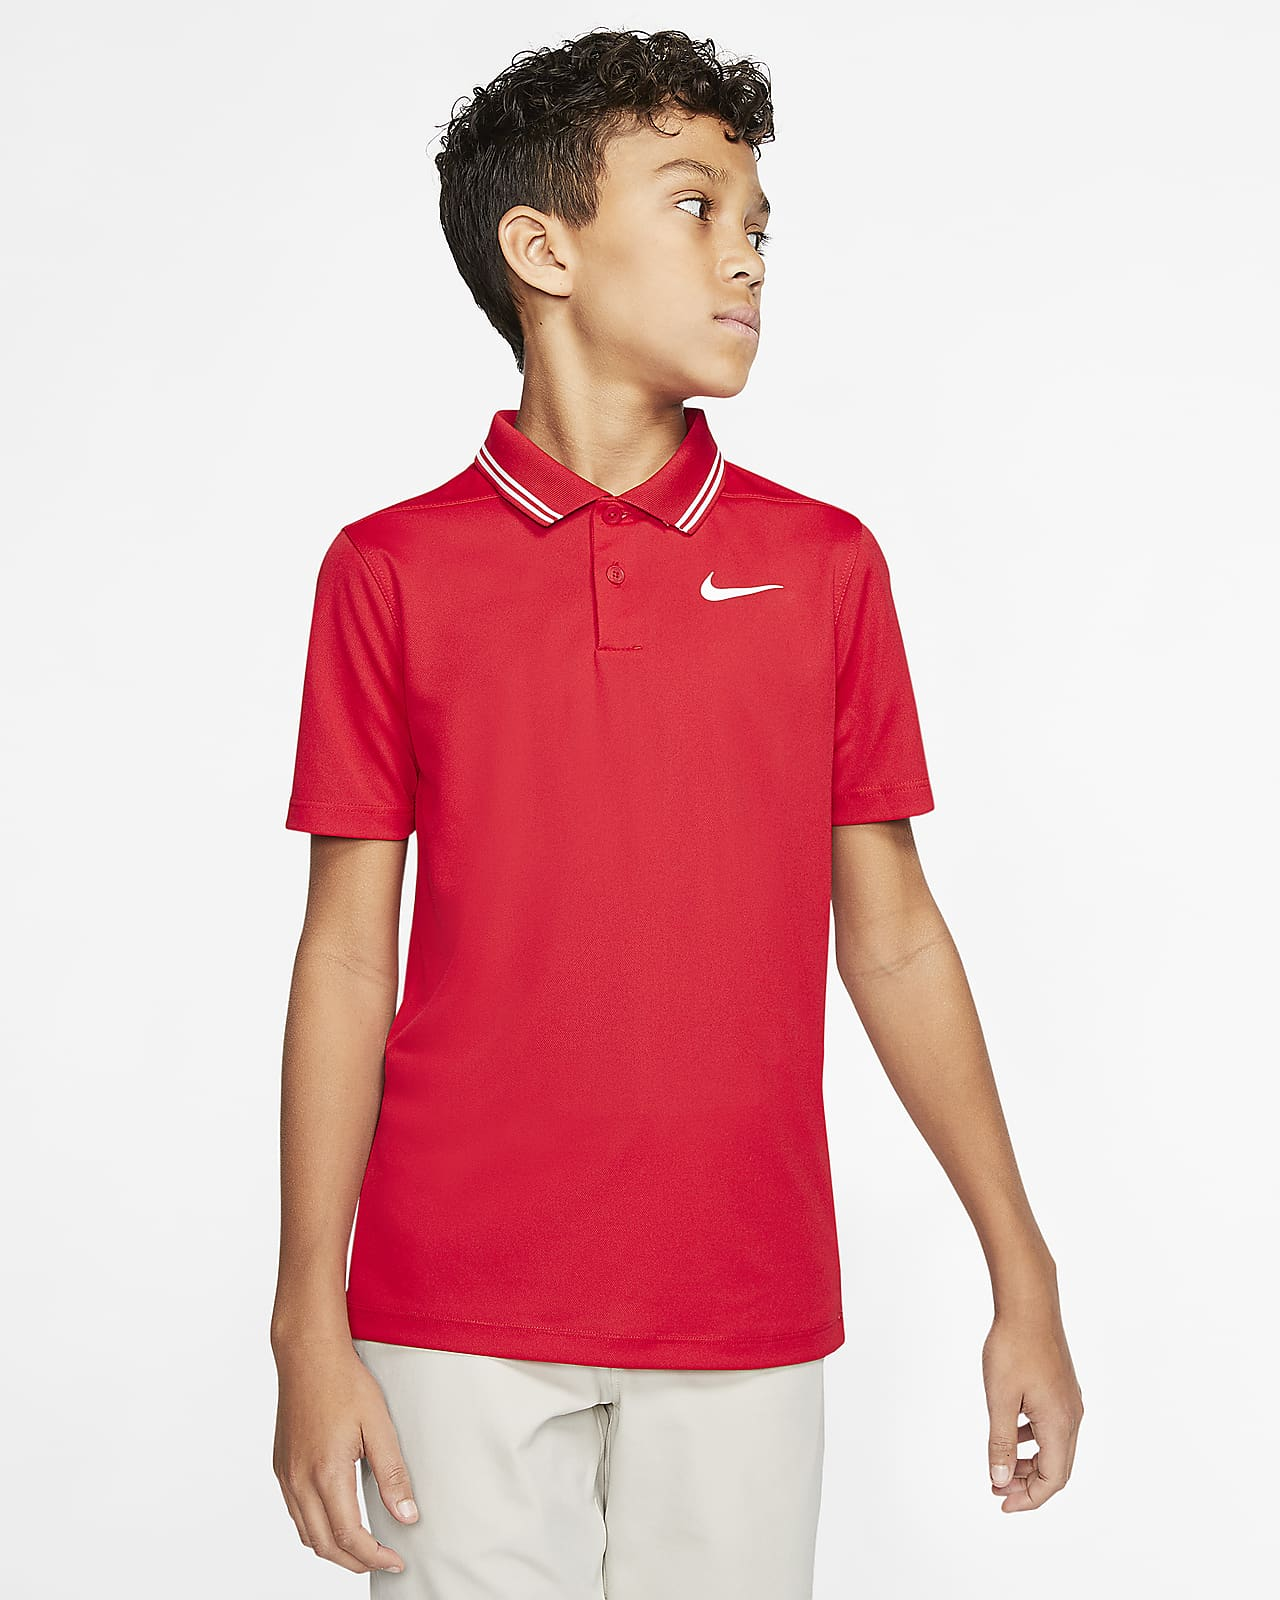 Nike Dri-FIT Victory Boys' Golf Polo